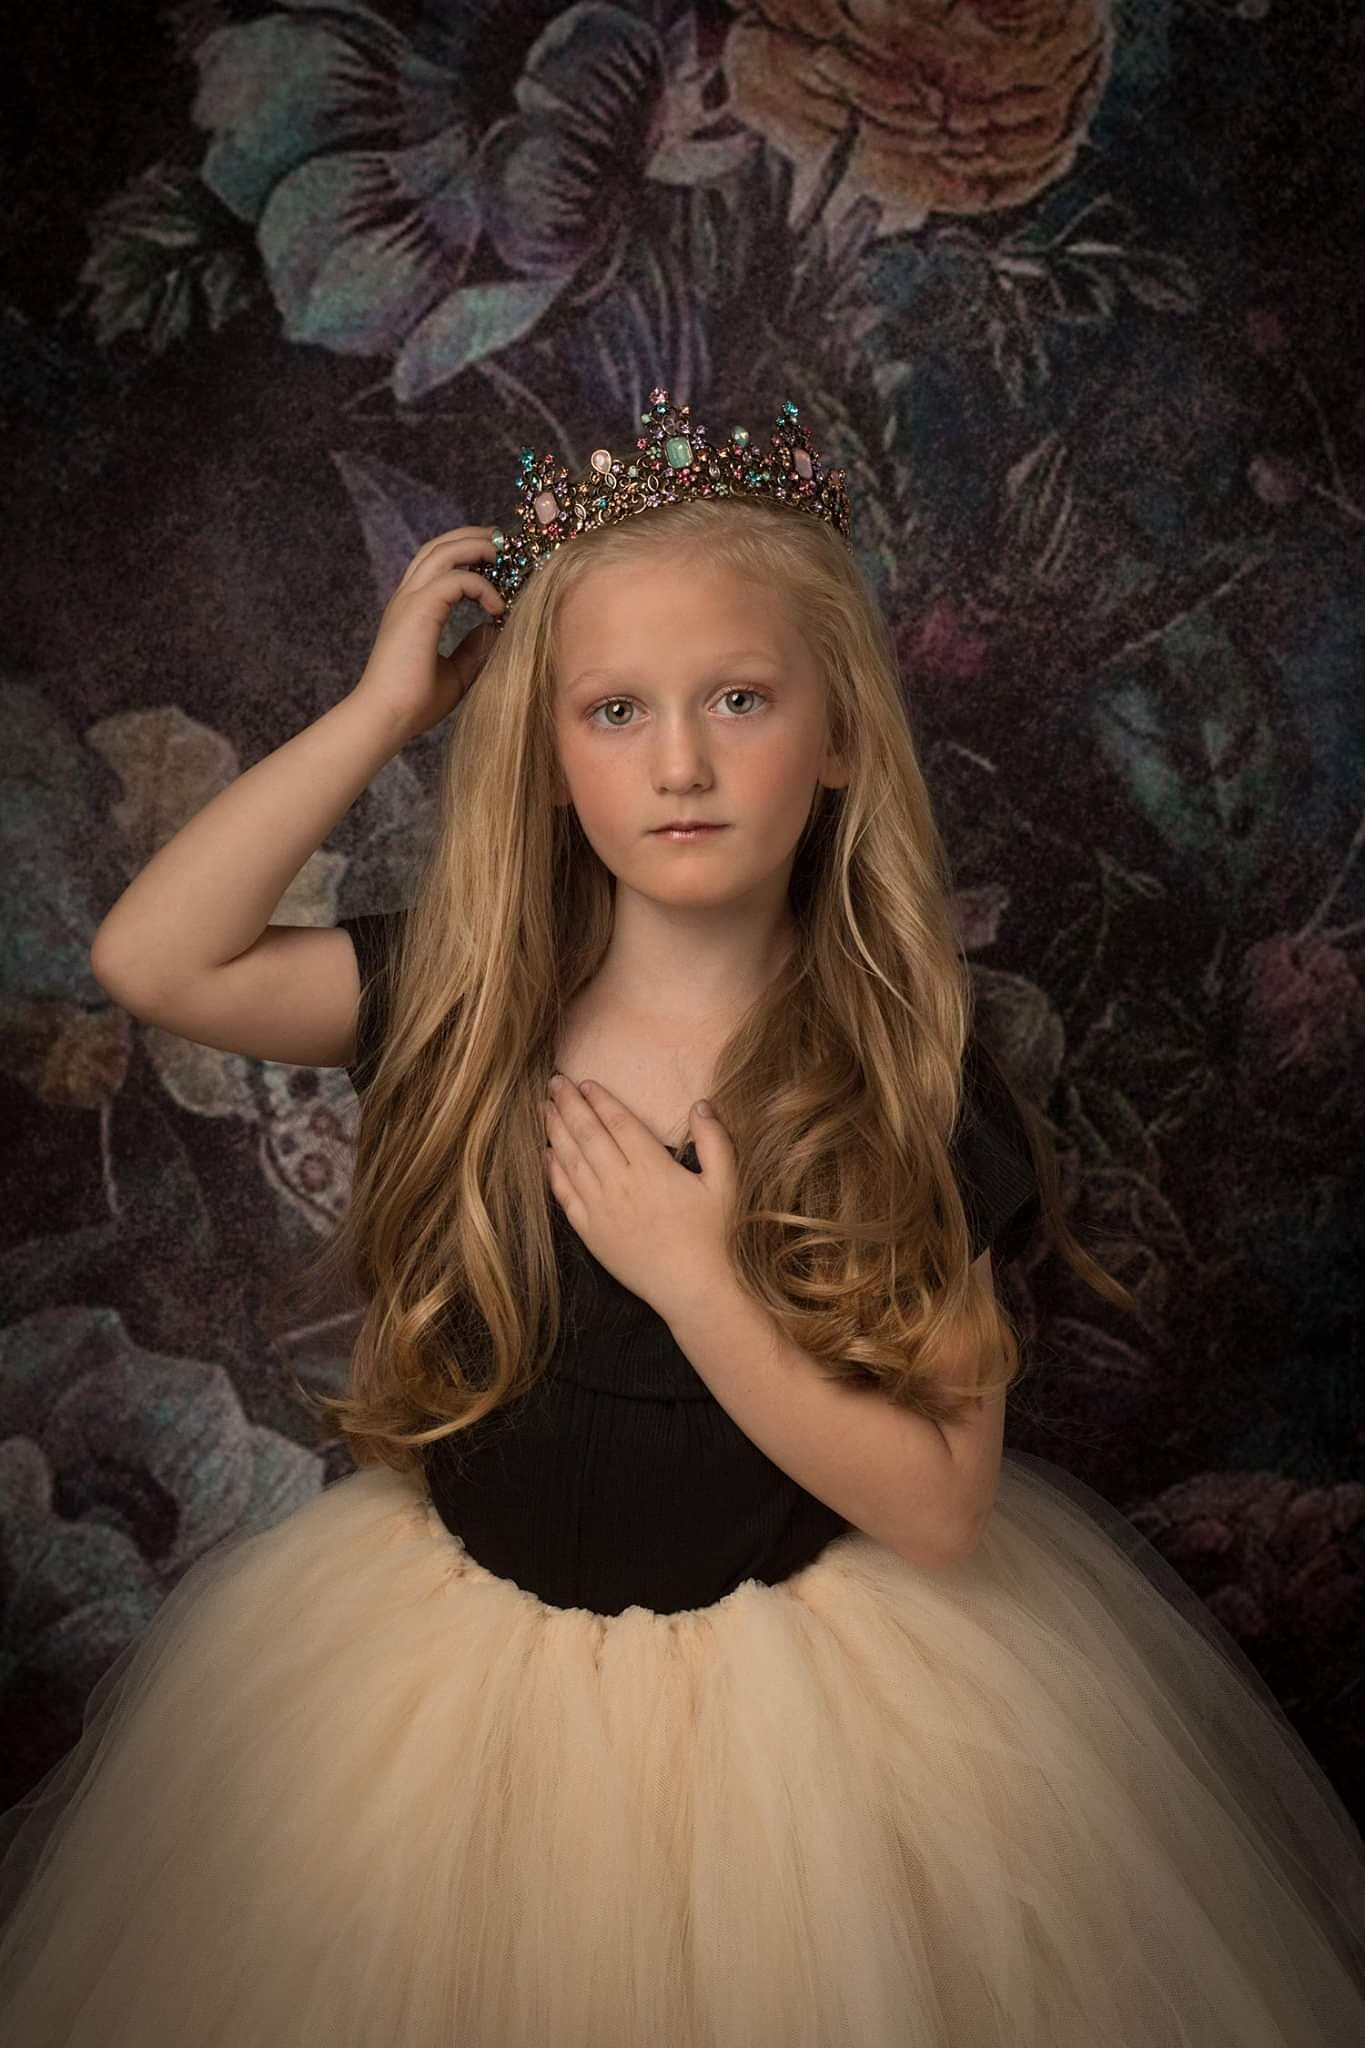 ballerina posing with her crown and tutu